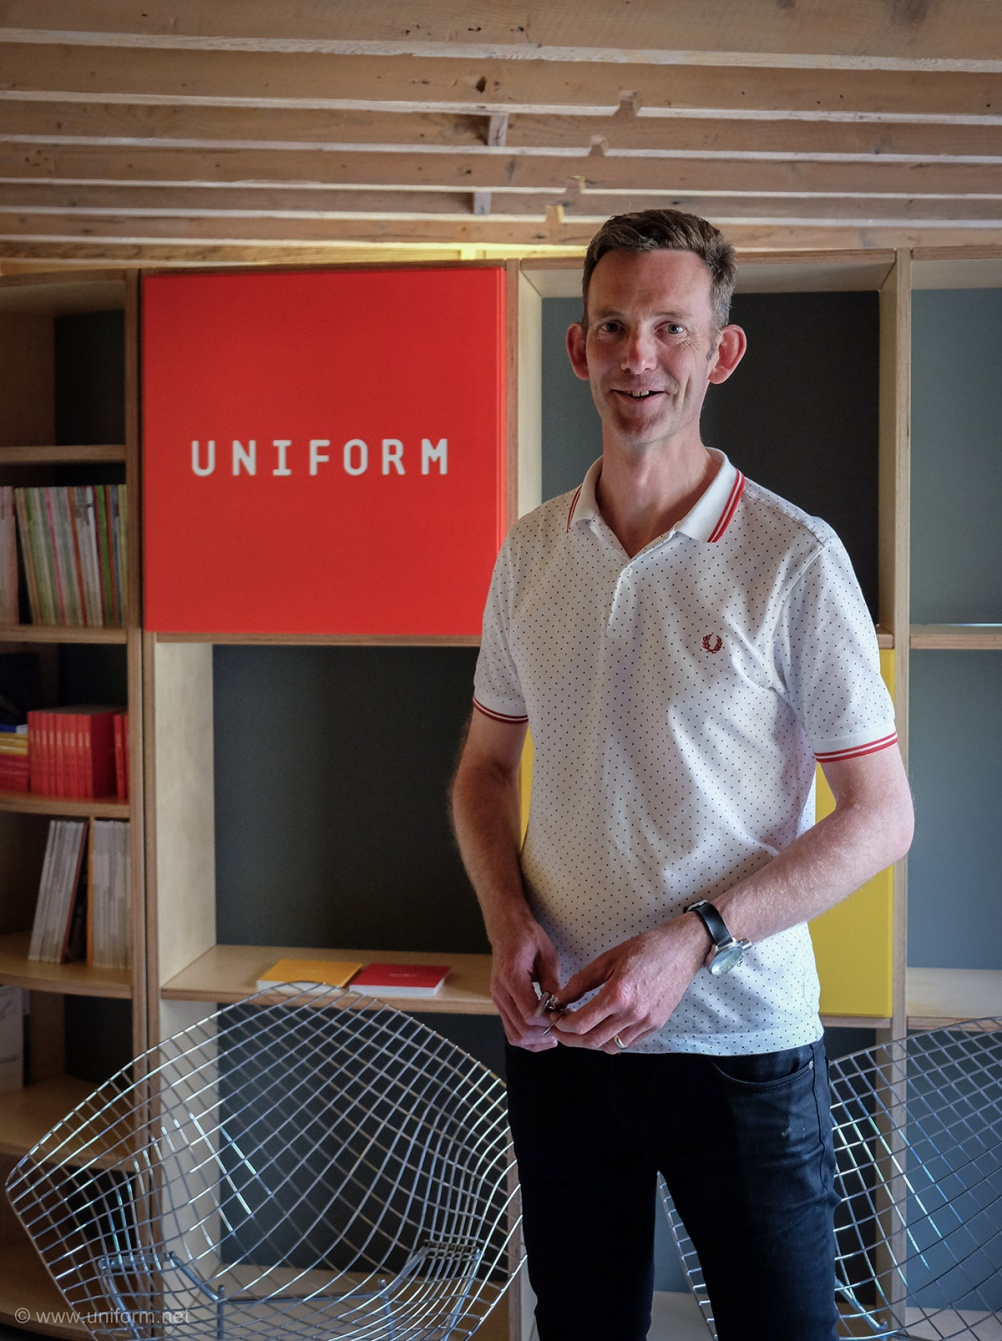 Ken Dixon, head of brand strategy, Uniform